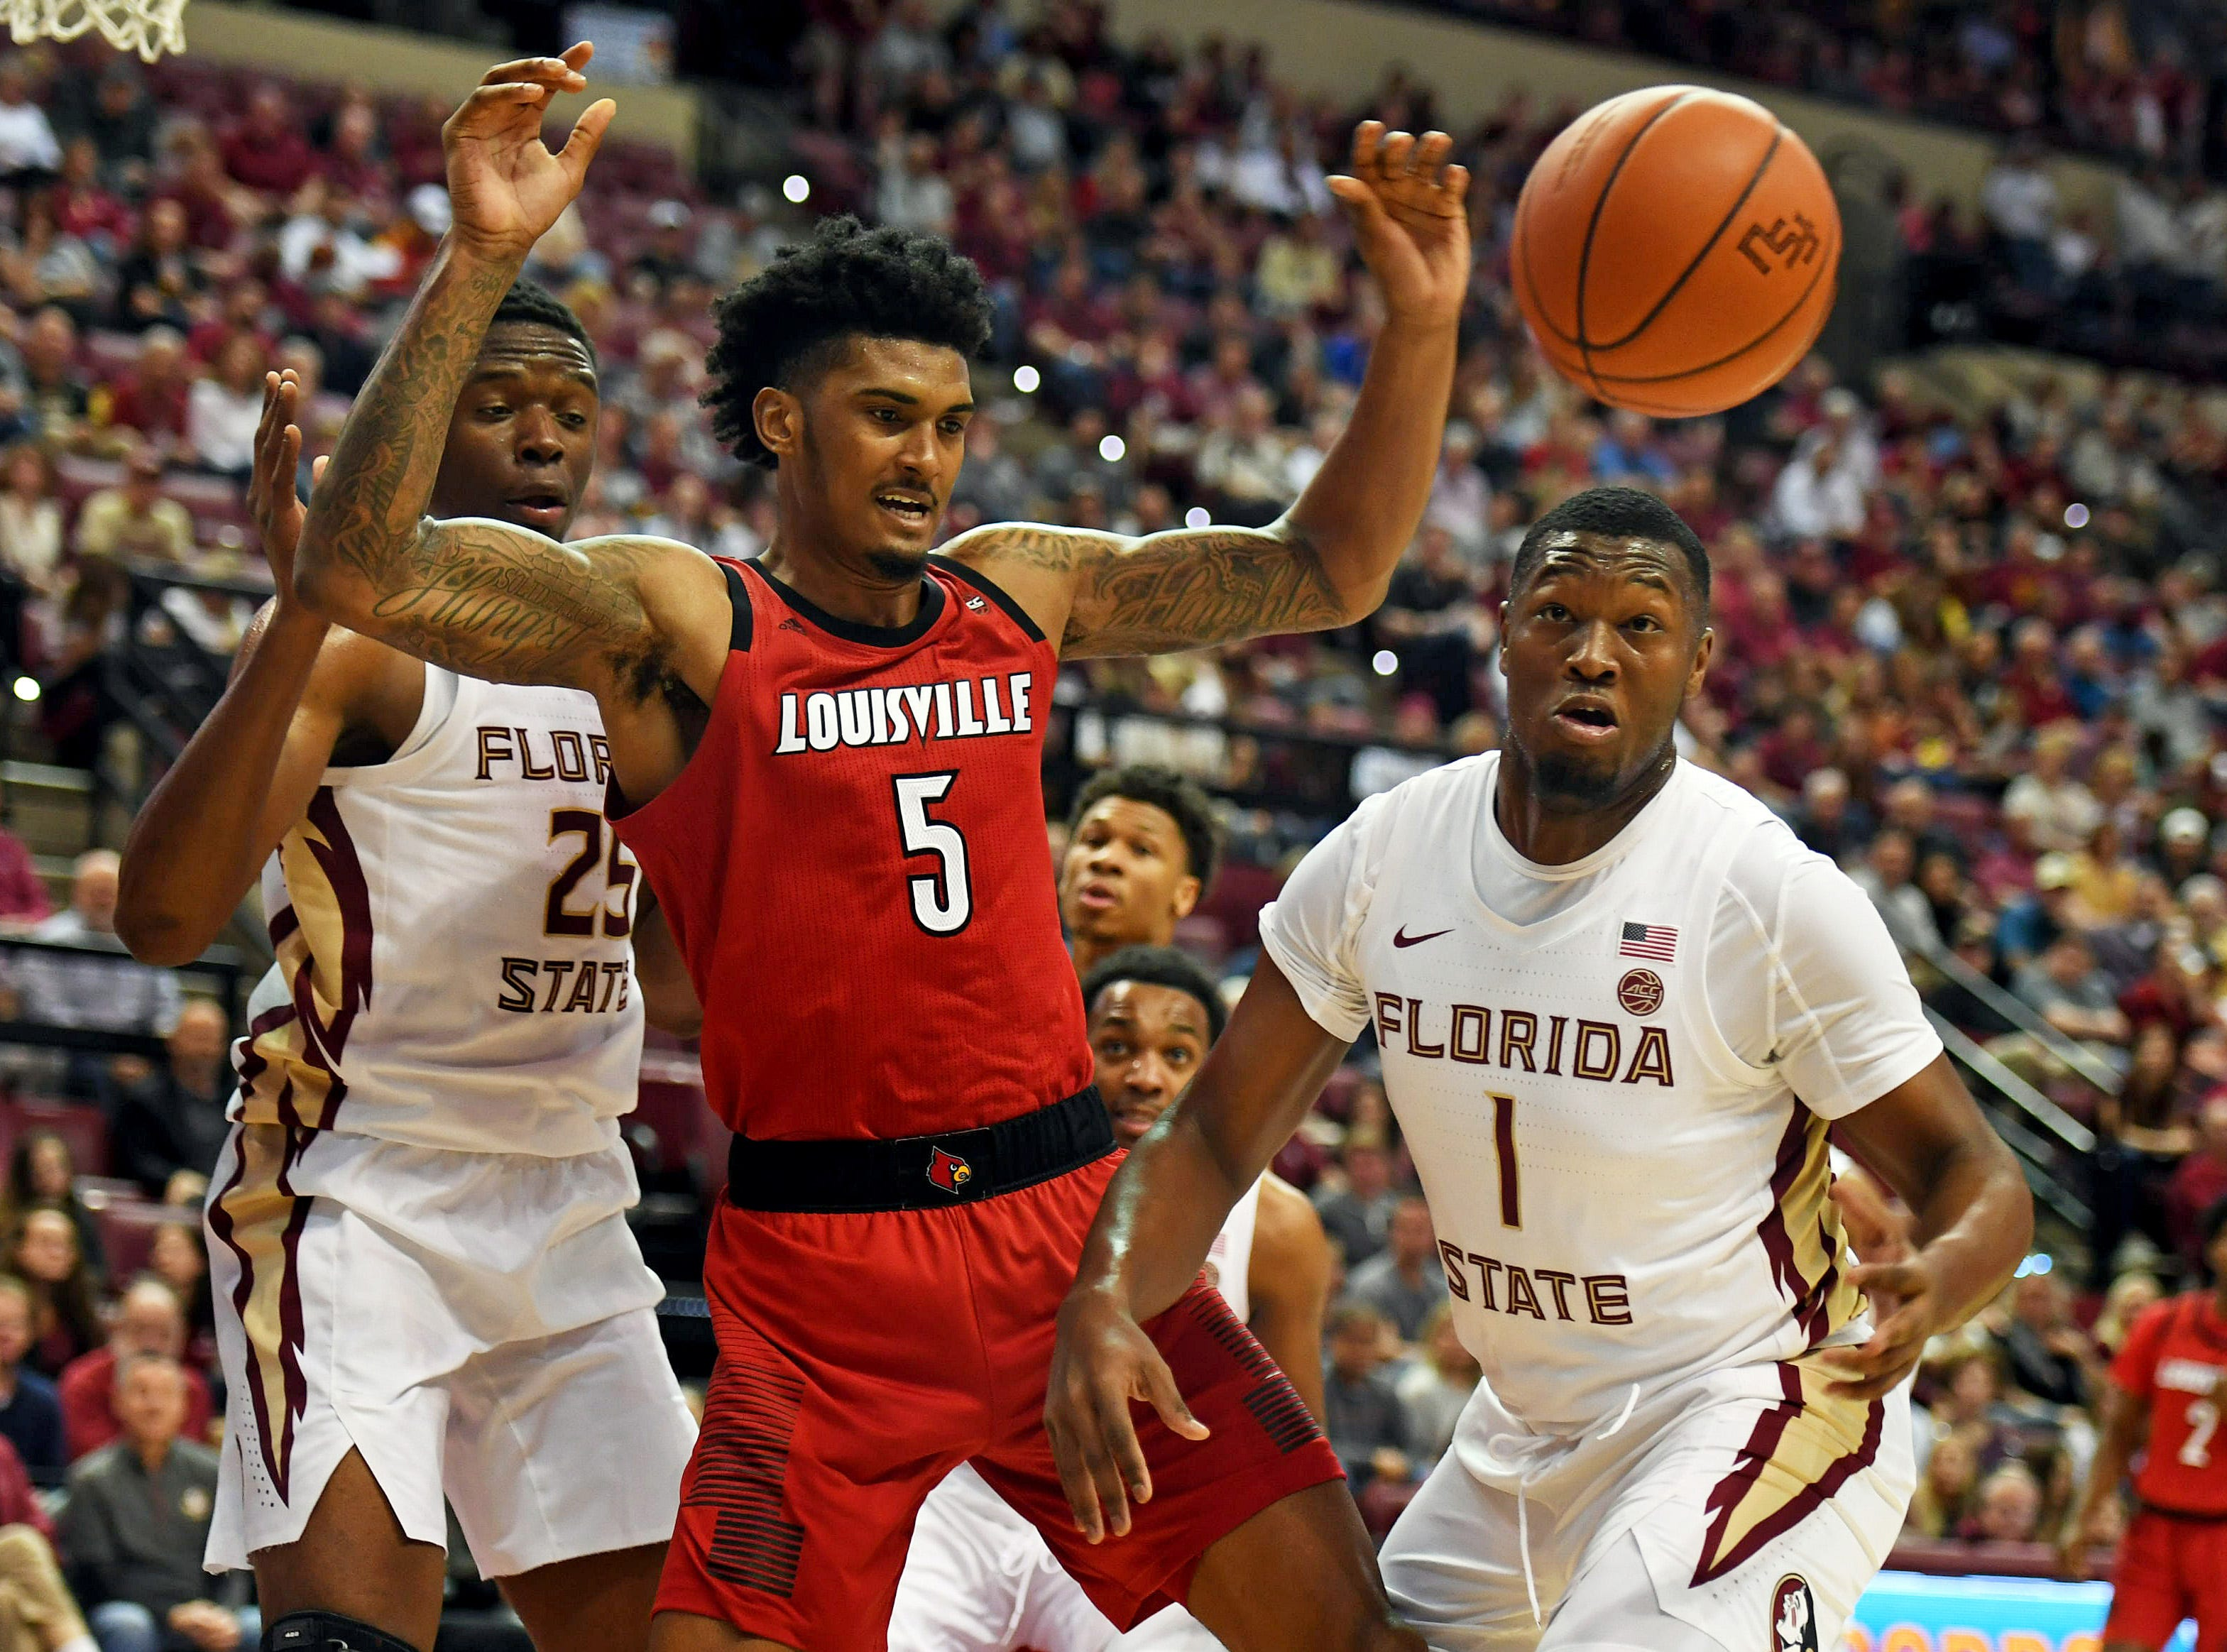 Feb 9, 2019; Tallahassee, FL, USA; Louisville Cardinals forward Malik Williams (5) fights for a loose ball against Florida State Seminoles forward Raiquan Gray (1) during the first half at Donald L. Tucker Center. Mandatory Credit: Melina Myers-USA TODAY Sports